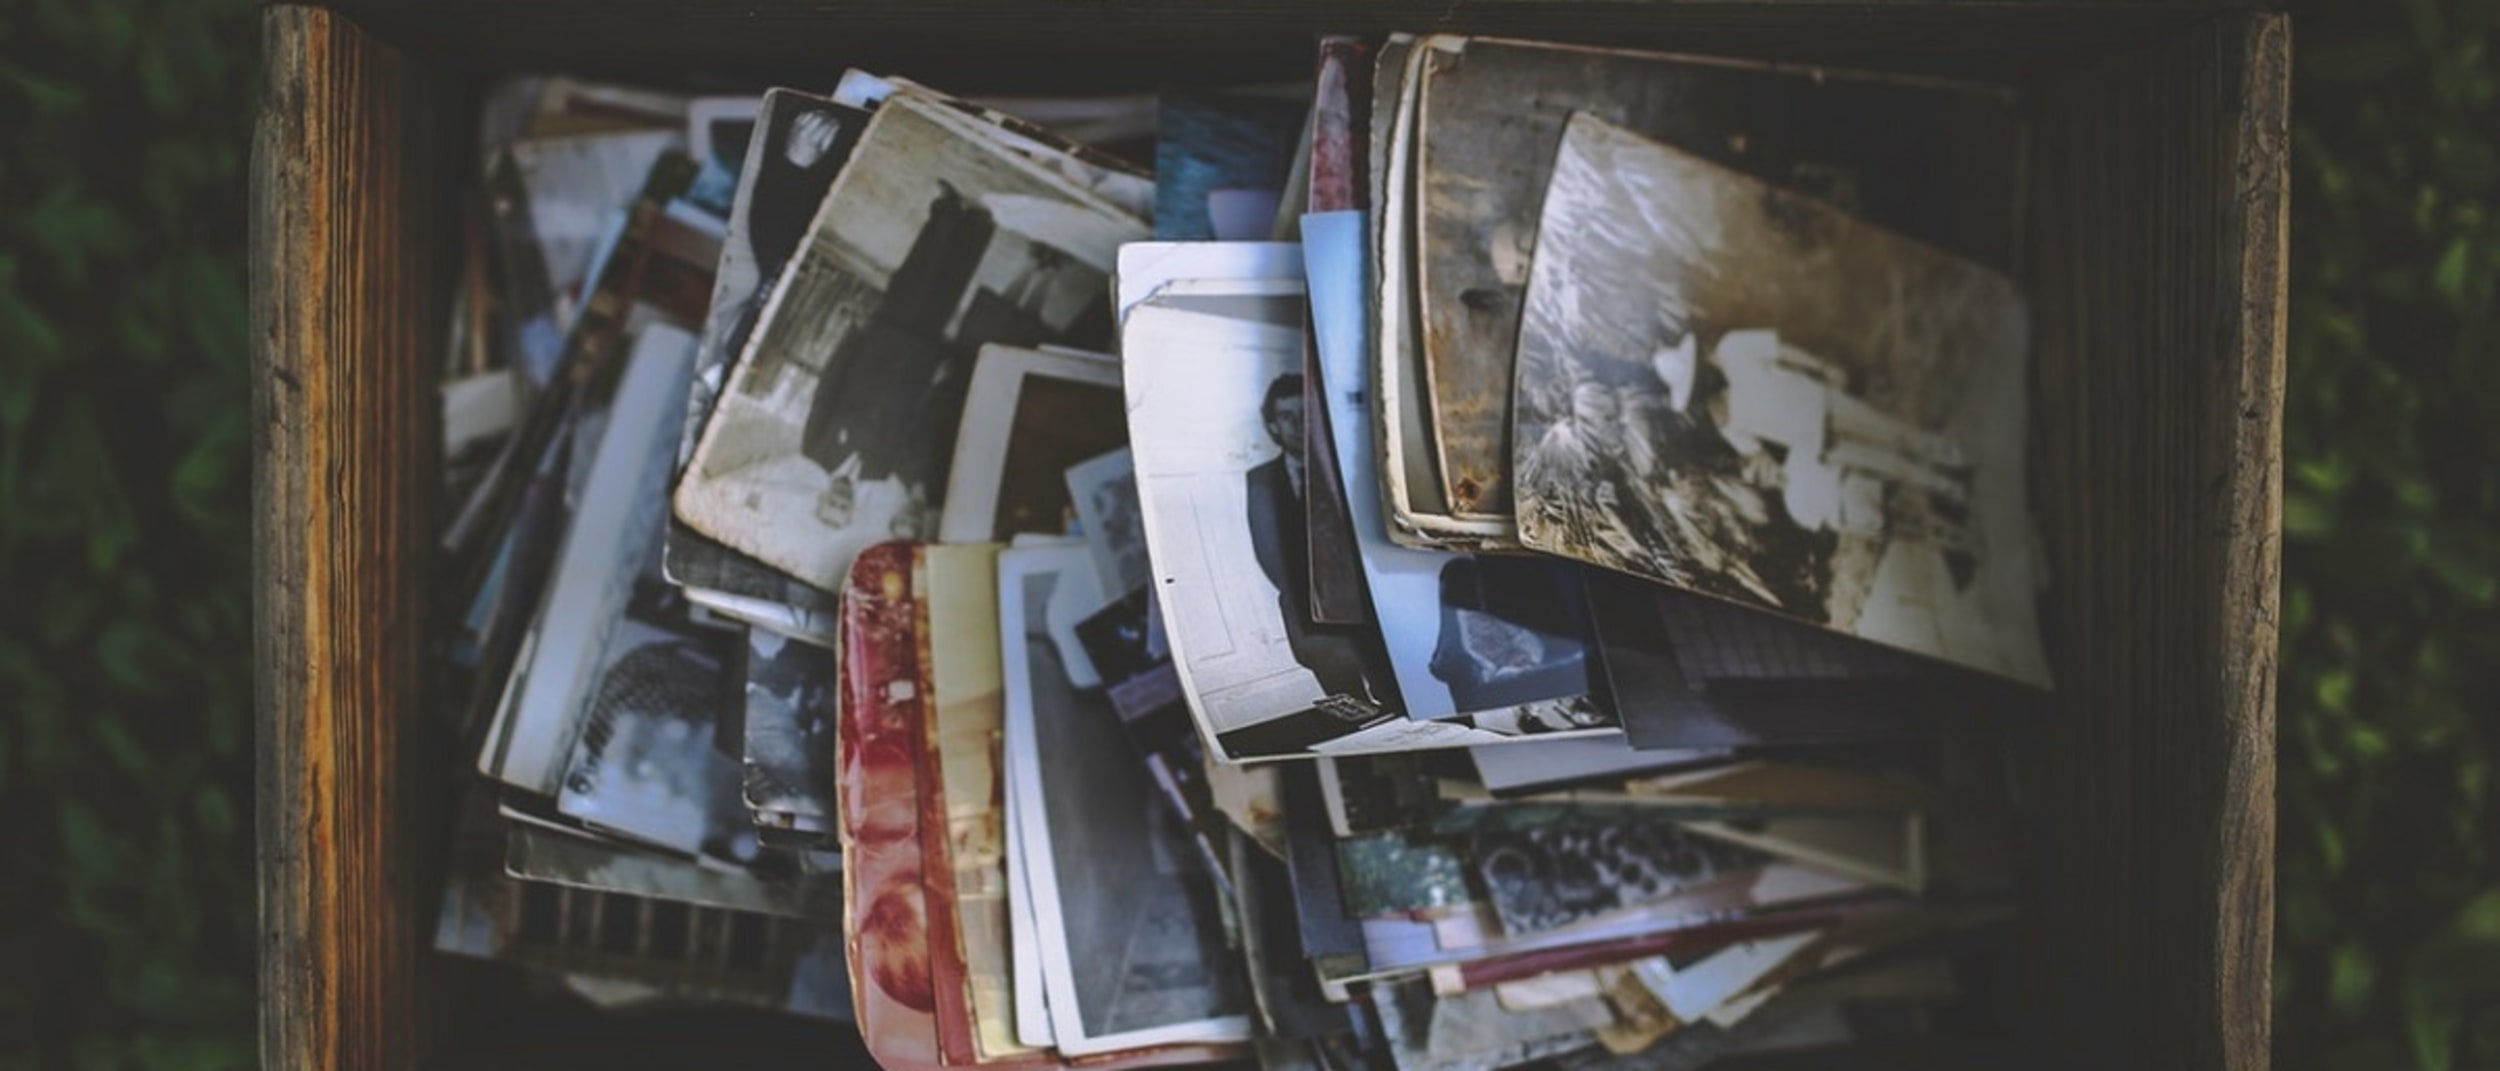 Dating old photos and caring for them at Garden City Library